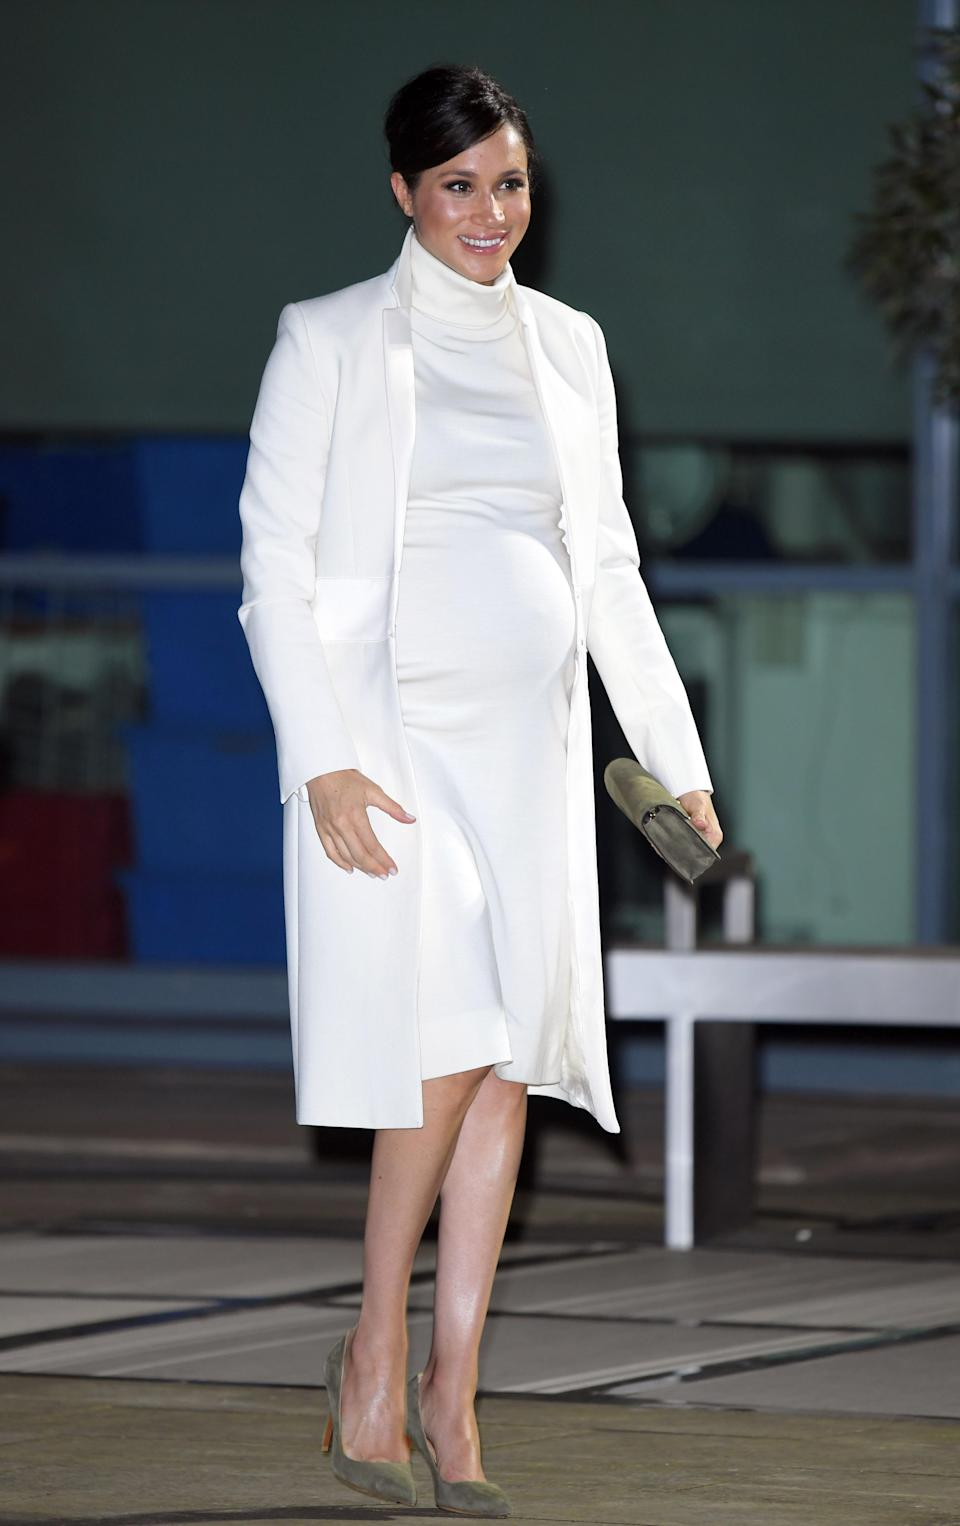 For a performance of 'The Wider Earth' at the Natural History Museum, the royal recycled her Amanda Wakeley coat with a Calvin Klein Resort 2019 collection roll-neck dress. A khaki Ralph Laurent clutch and co-ordinating shoes finished the winter ensemble. [Photo: Getty]